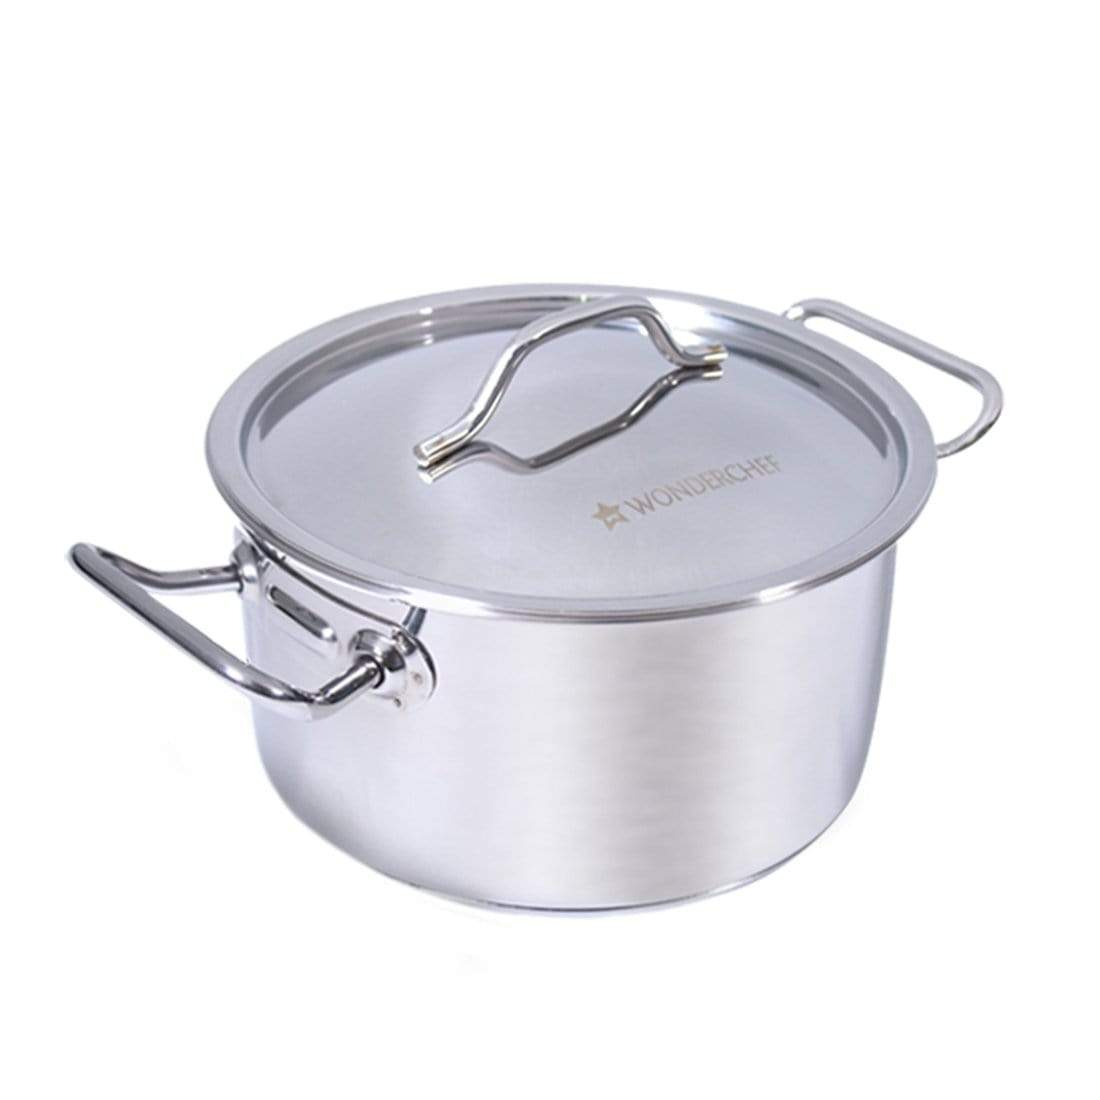 Stanton Stainless Steel Casserole with SS Lid-18 cm, 2.5L, 0.6mm